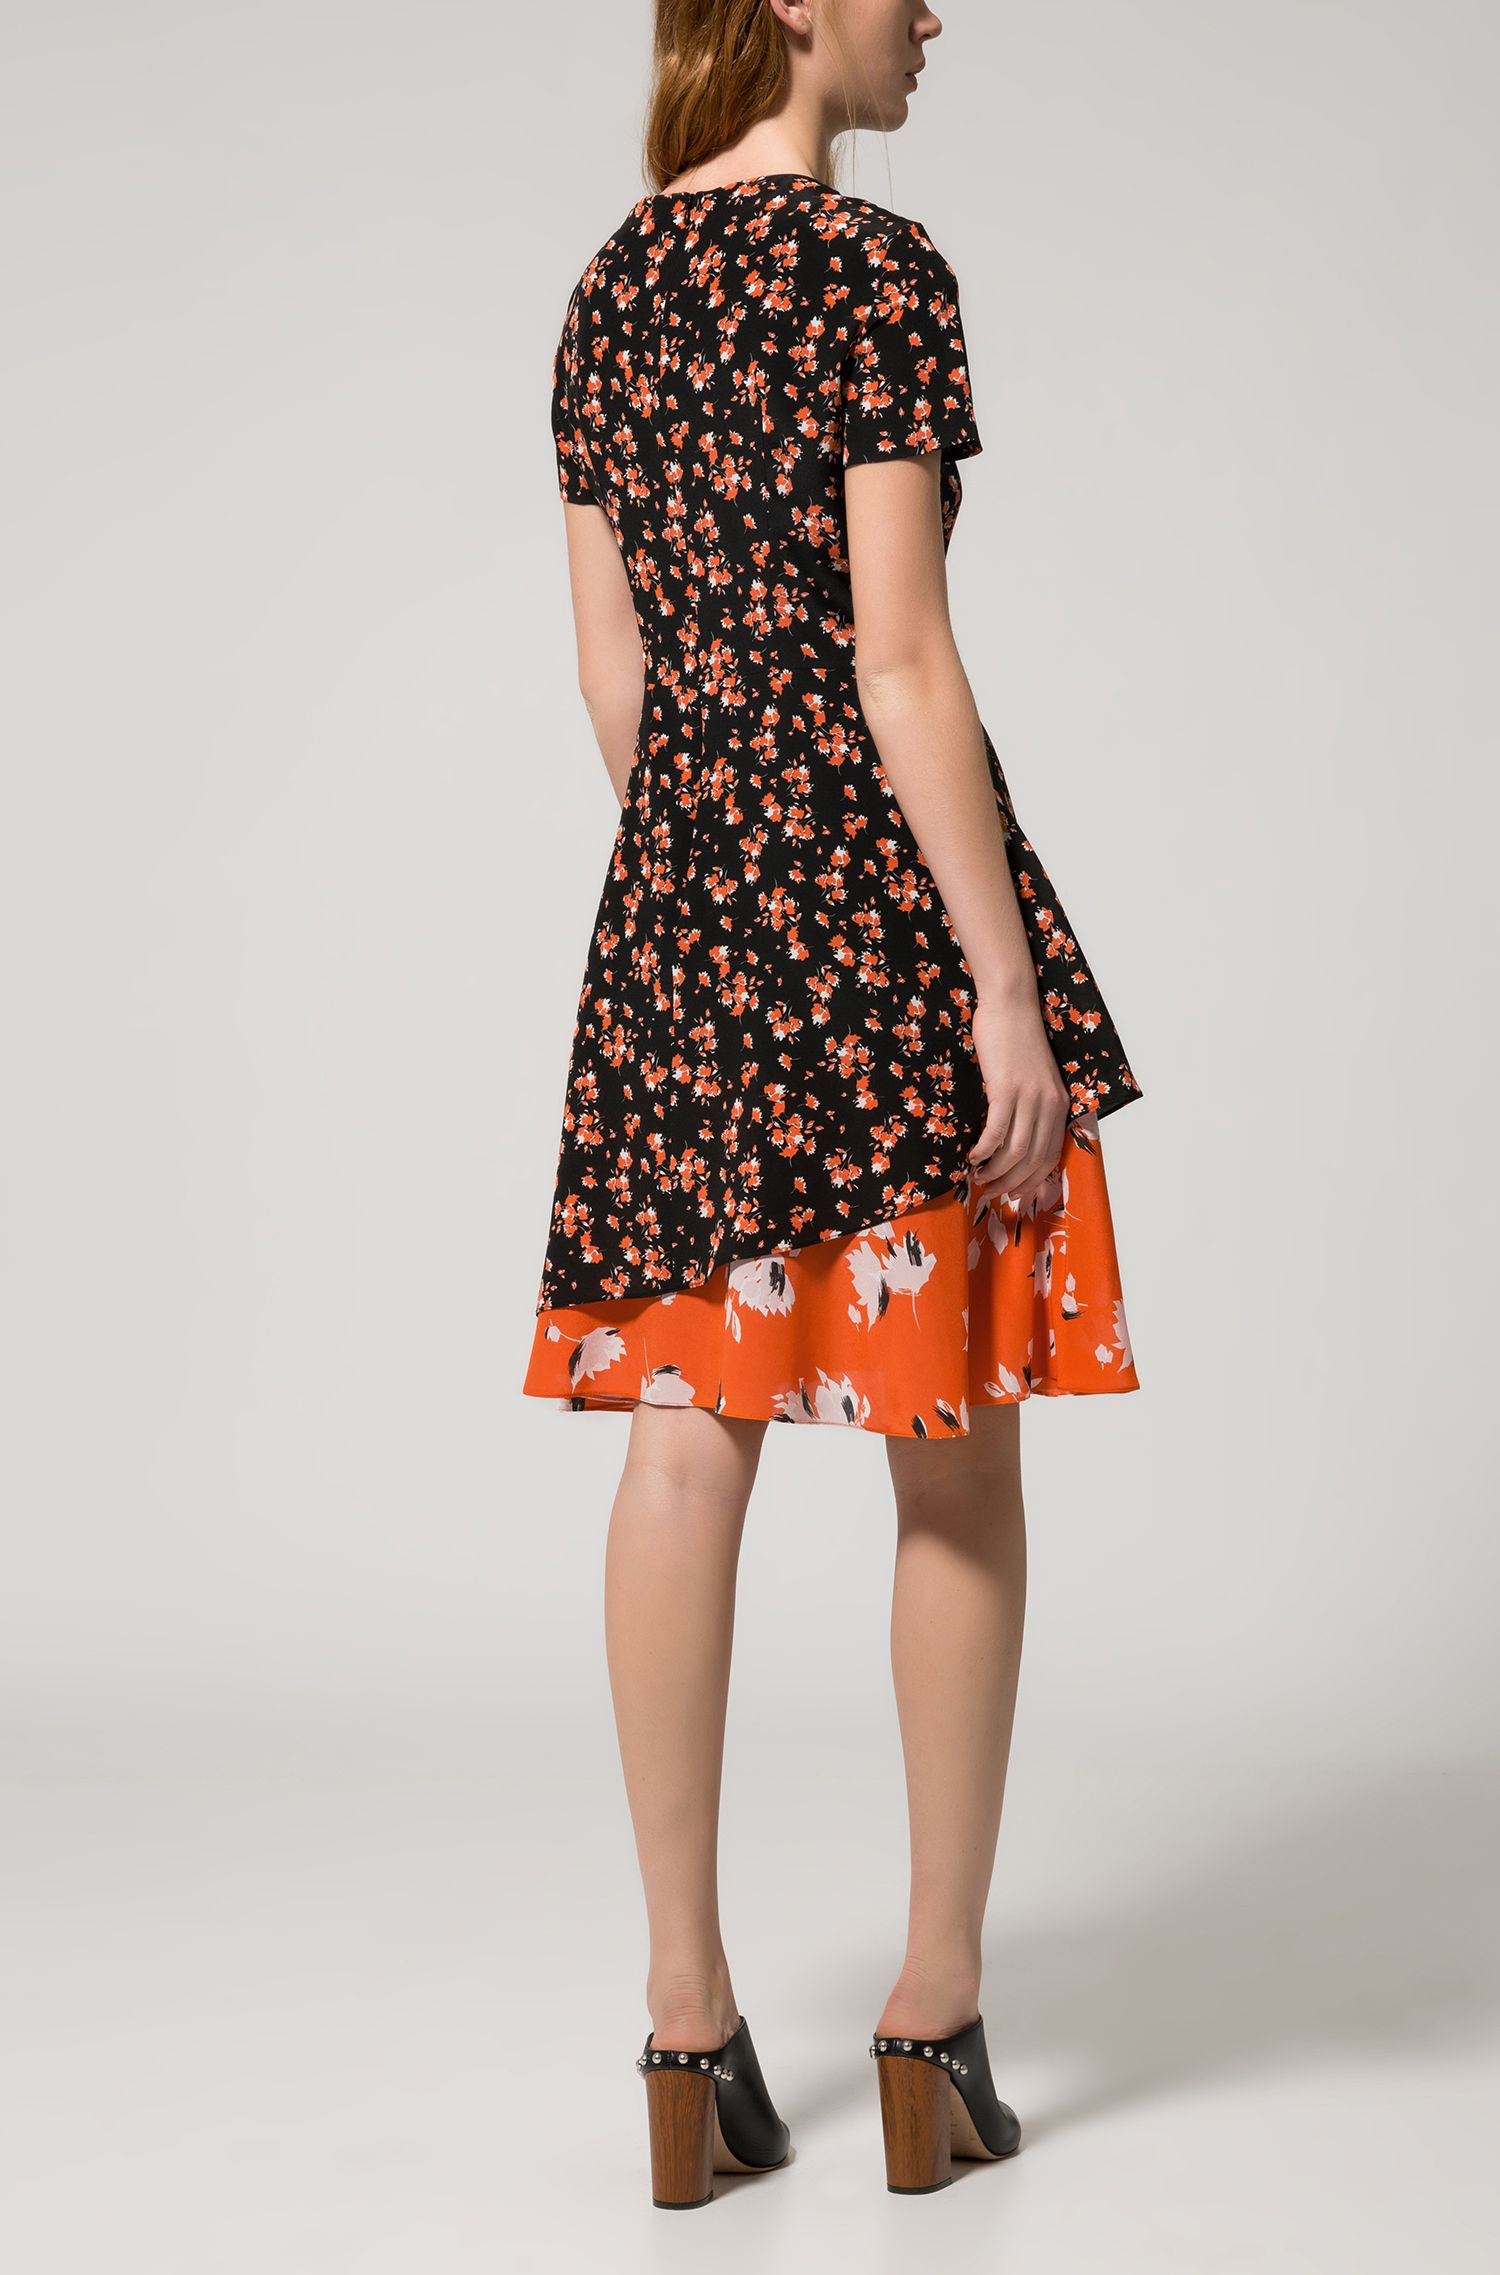 Short-sleeved silk dress with patched floral prints